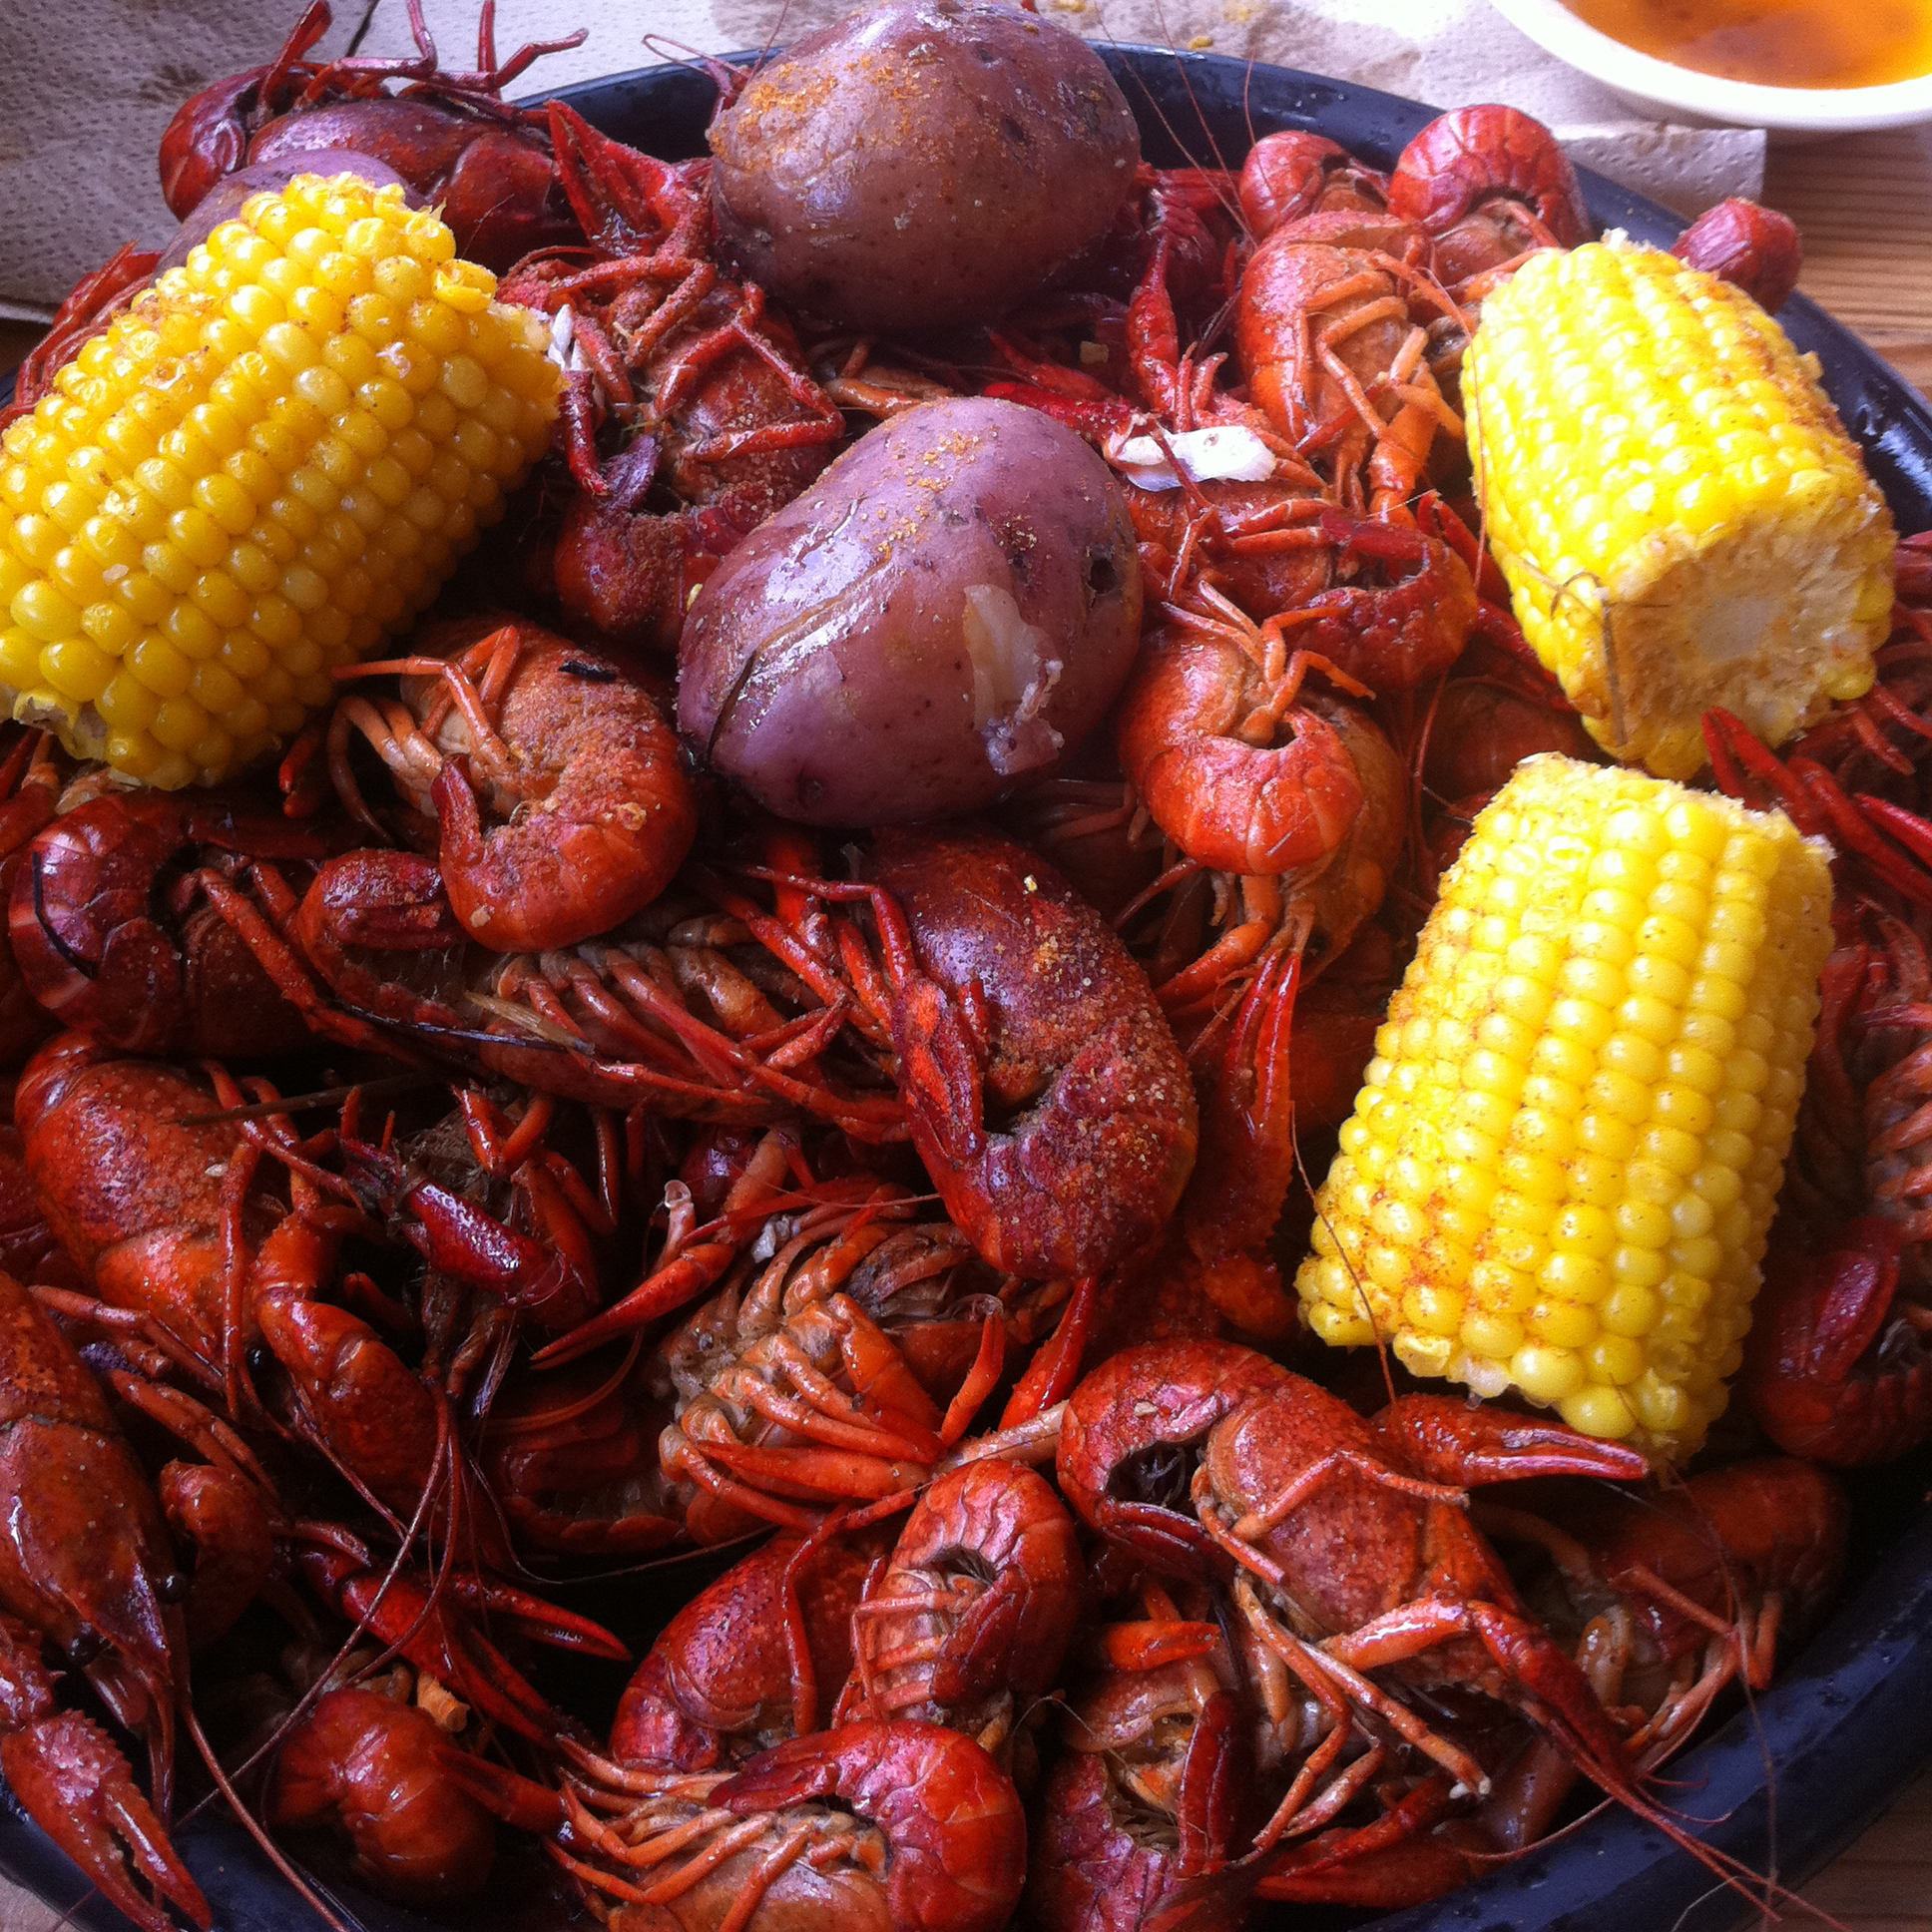 File:Crawfish Boil.jpg - Wikimedia Commons